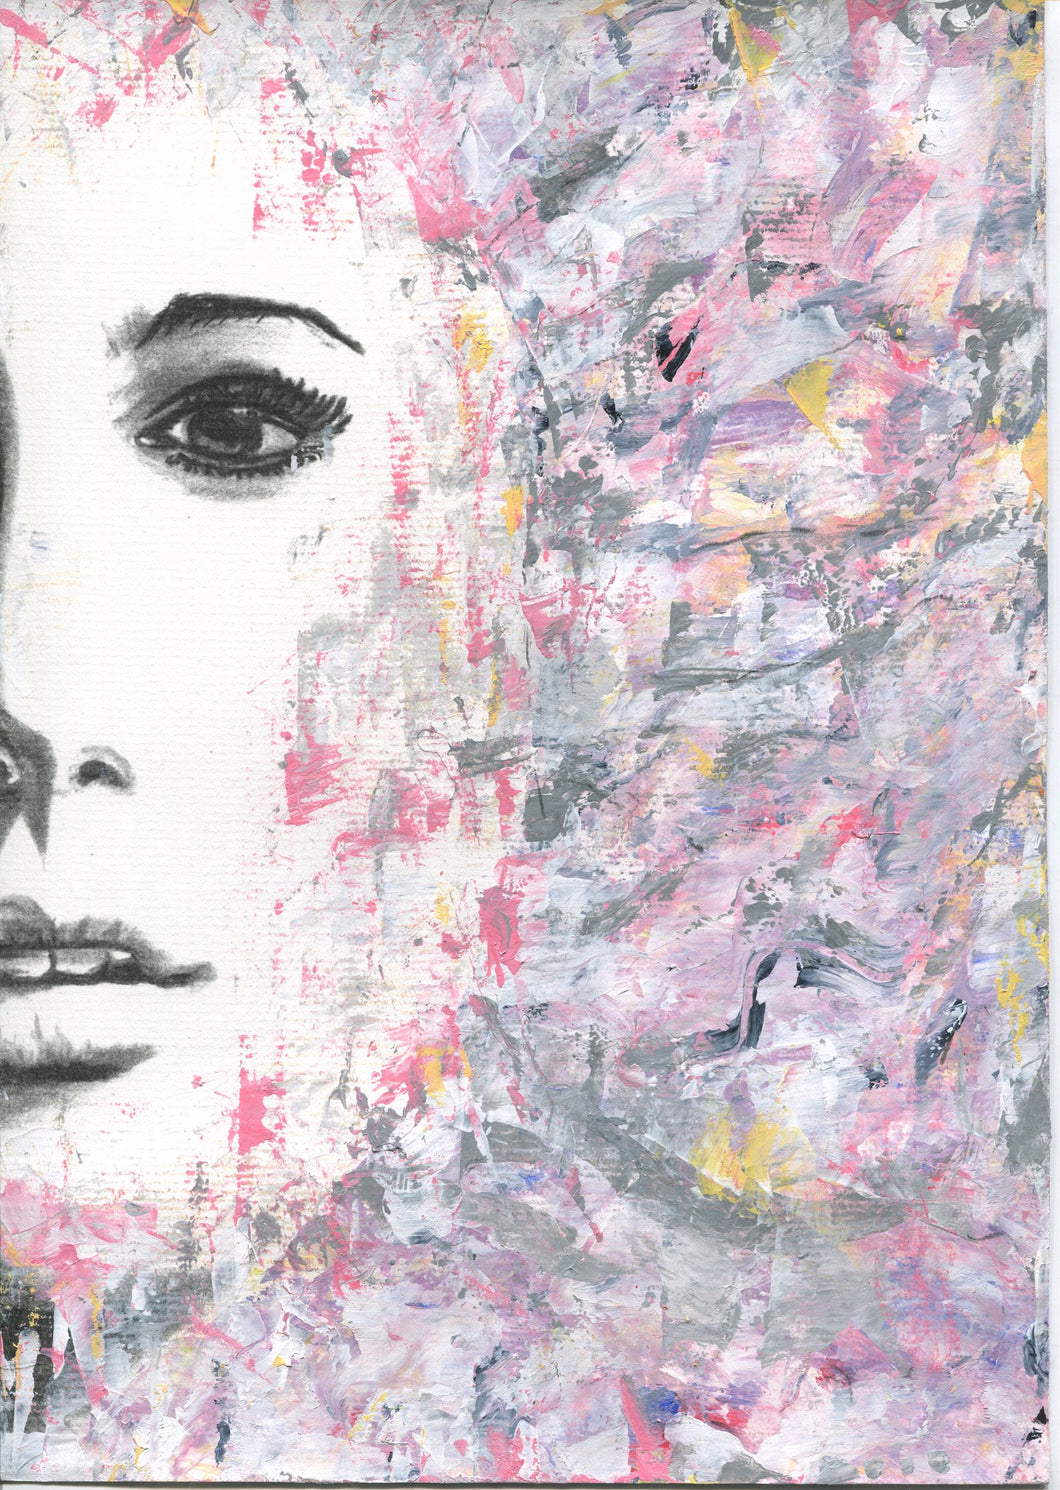 Woman half face pink and grey acrylic abstract version from black and white charcoal portrait drawing fine art poster print